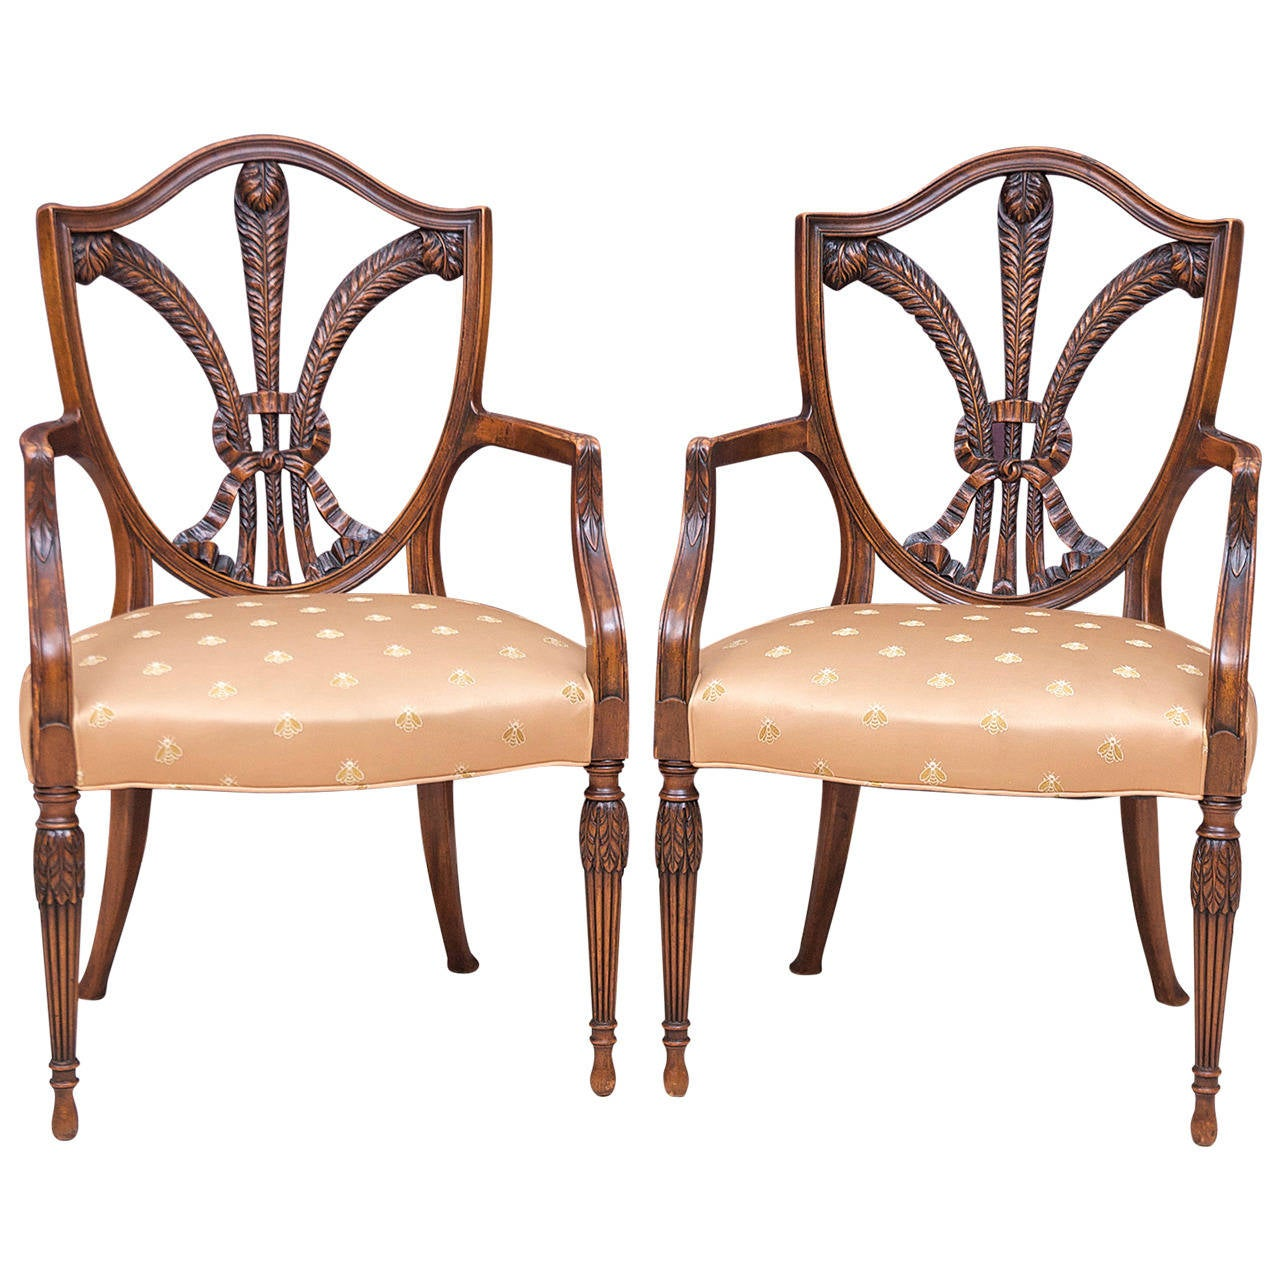 Merveilleux 19th Century Pair Of Shield Back Armchairs With Carved Prince Of Wales  Feathers For Sale